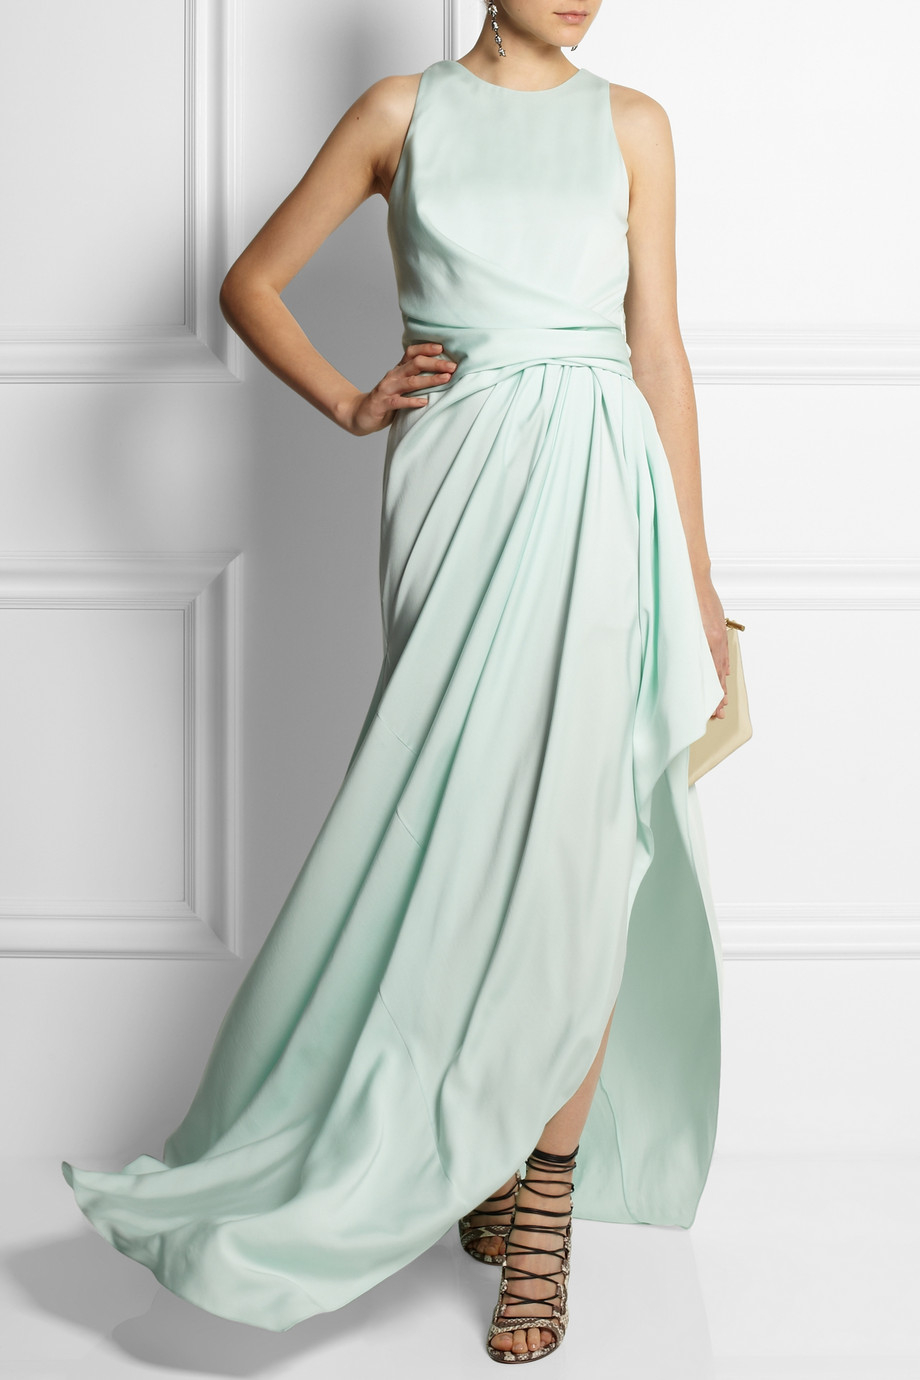 Lyst - Vionnet Gathered Stretchsilk Gown in Green